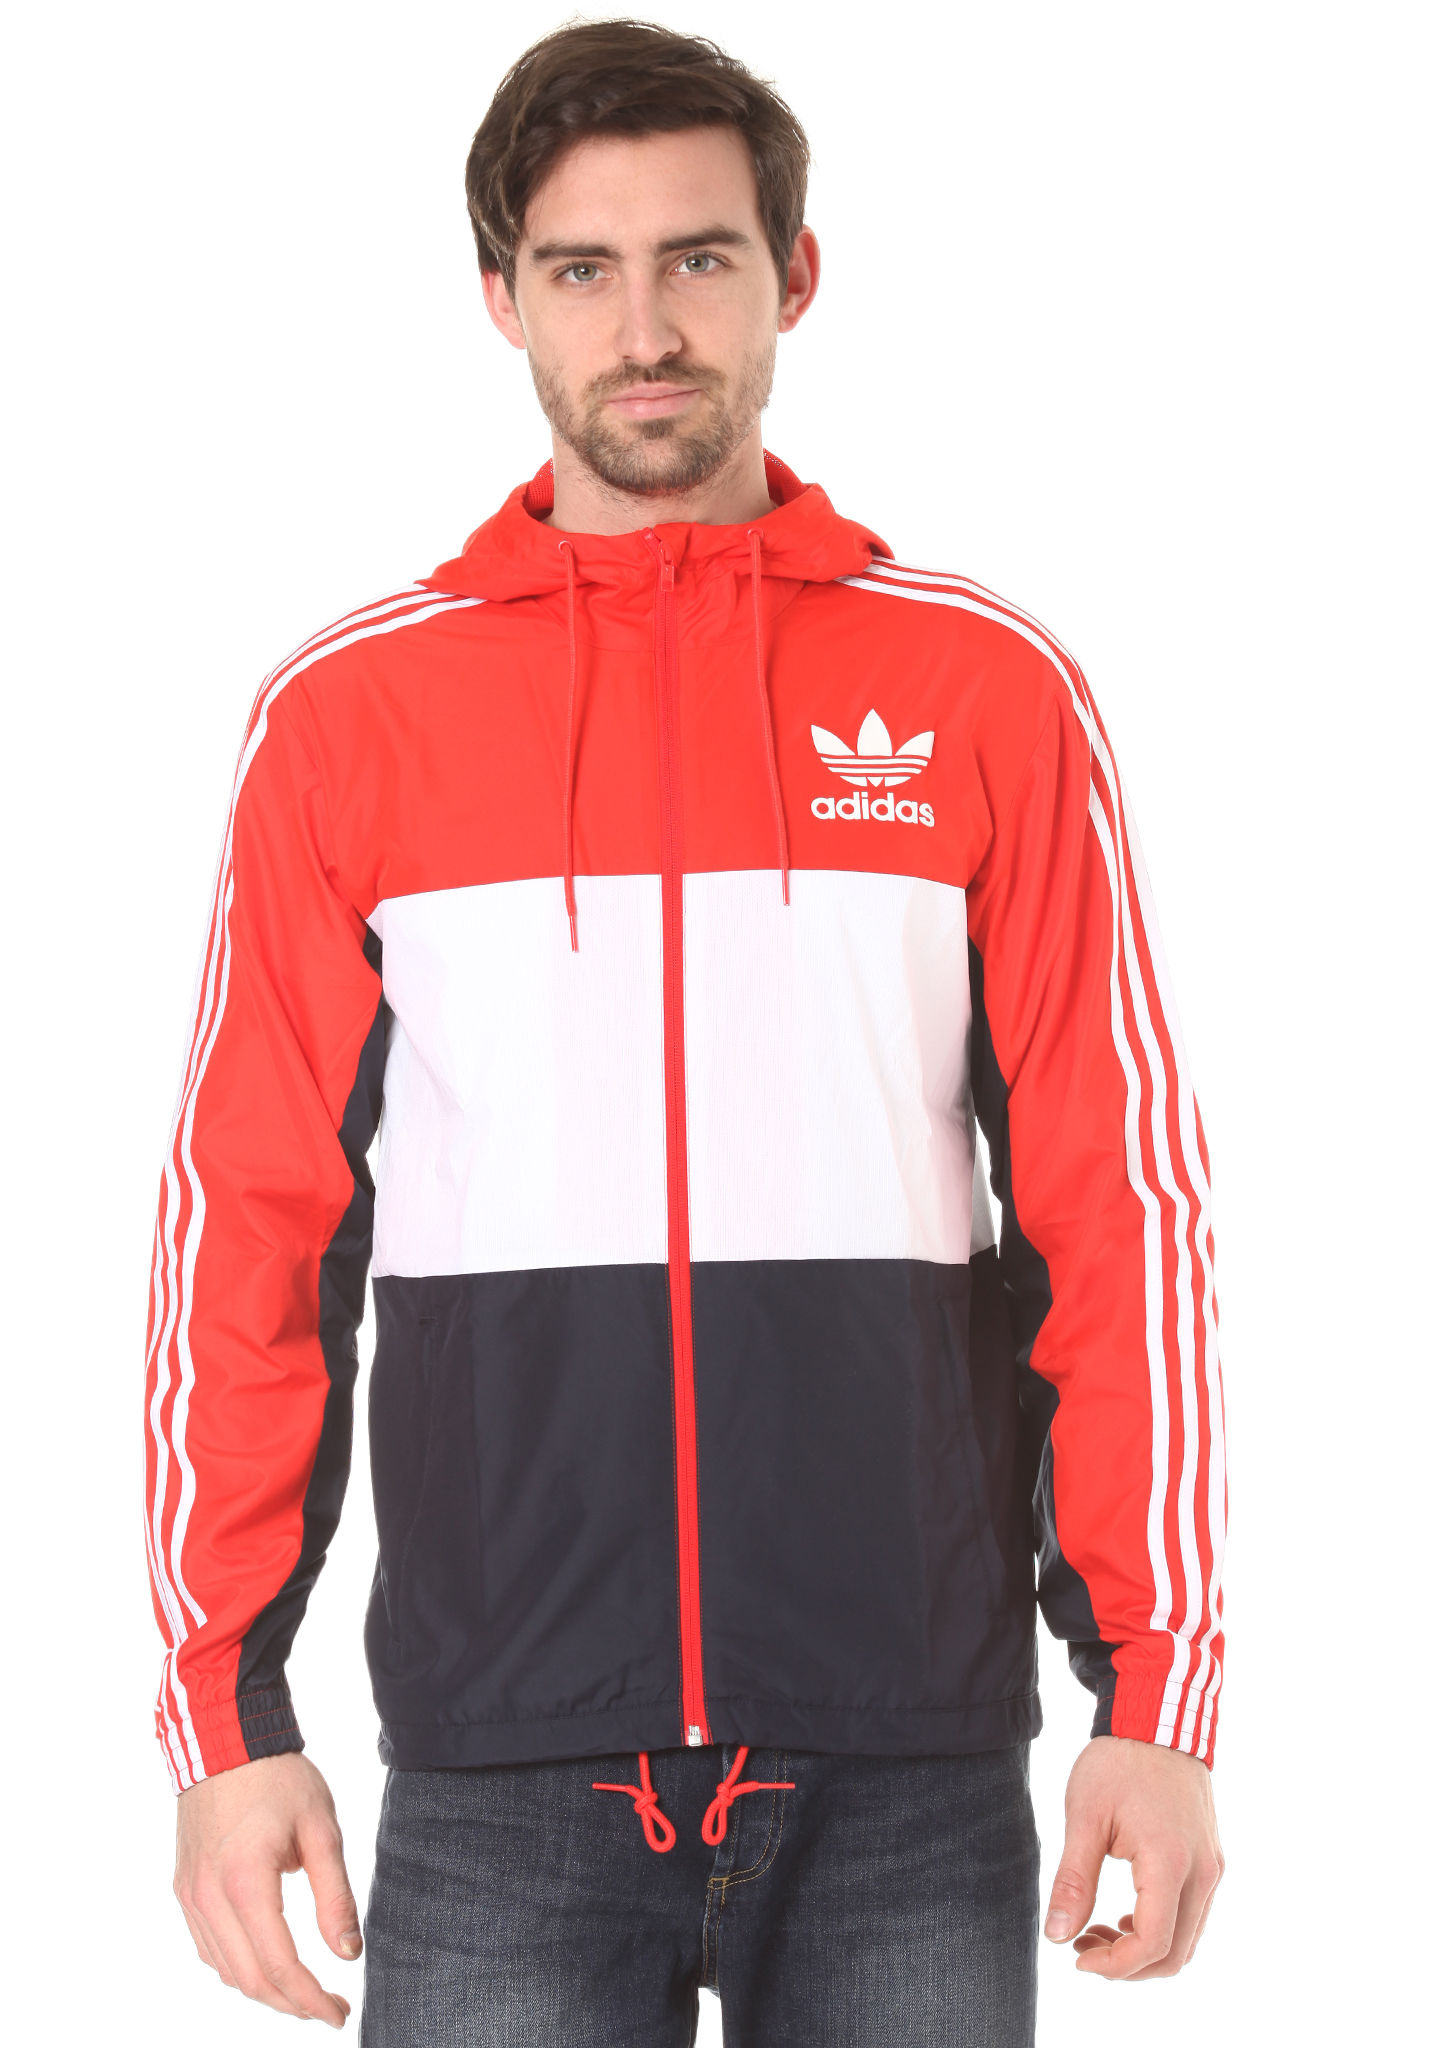 adidas jacke herren rot weiss beliebte jackenmodelle in. Black Bedroom Furniture Sets. Home Design Ideas